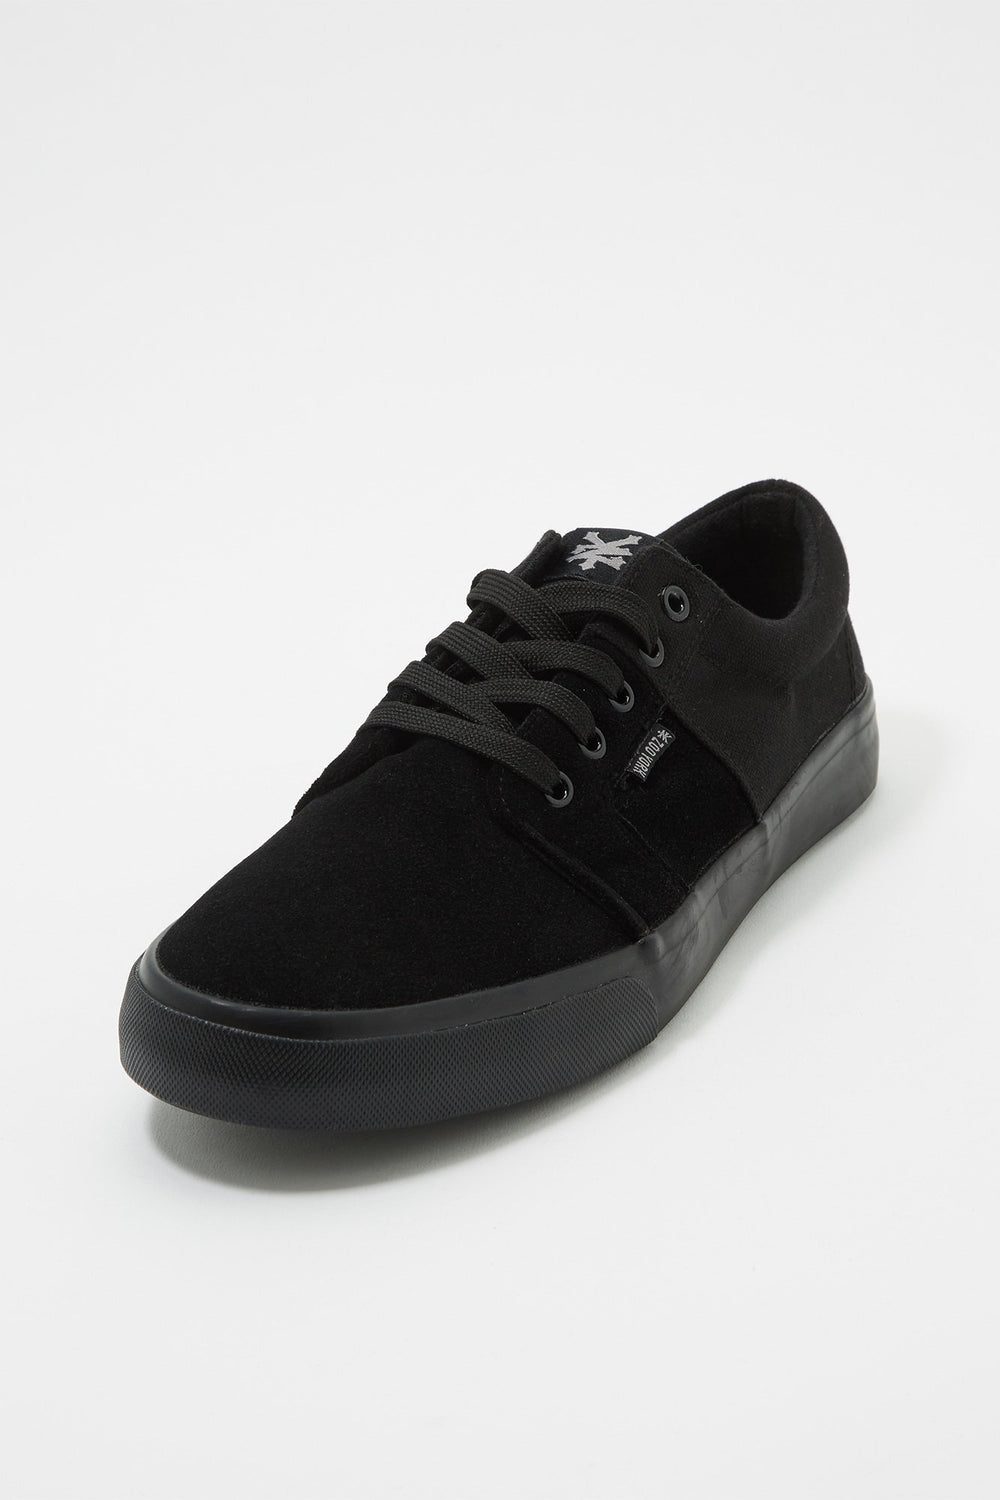 Zoo York Boys All Black Stack Lace-Up Canvas Shoes Black with White